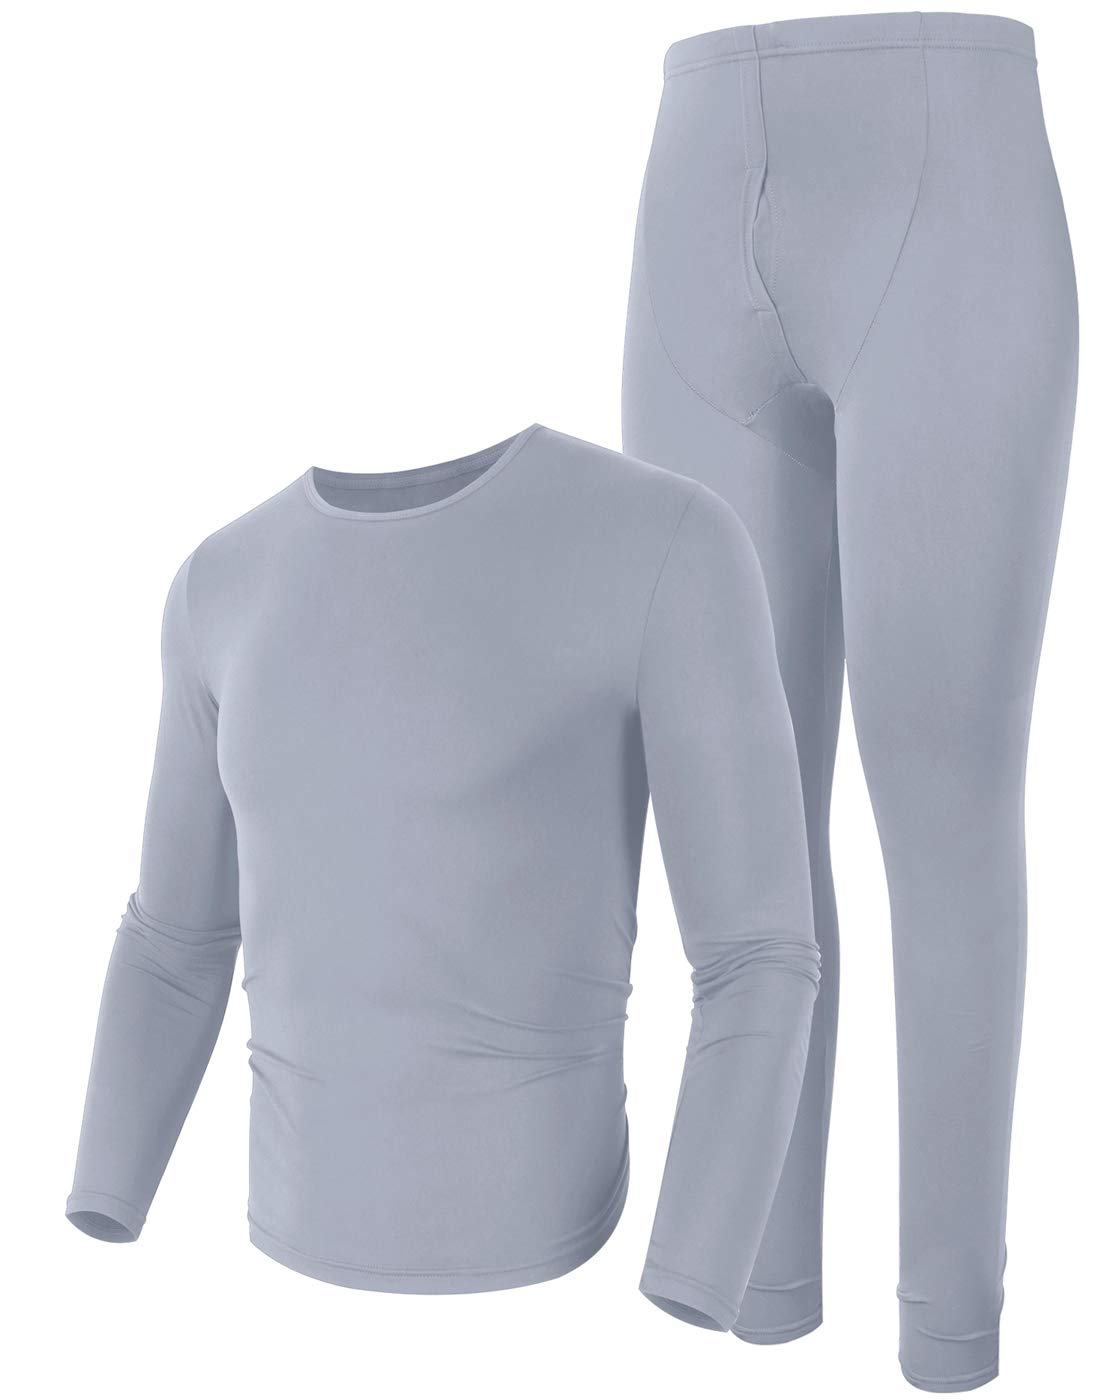 poriff Men Tall Long Underwear Soft Thermal Shirts Insulared Underwear Ultra Thin Thermal Grey S by poriff